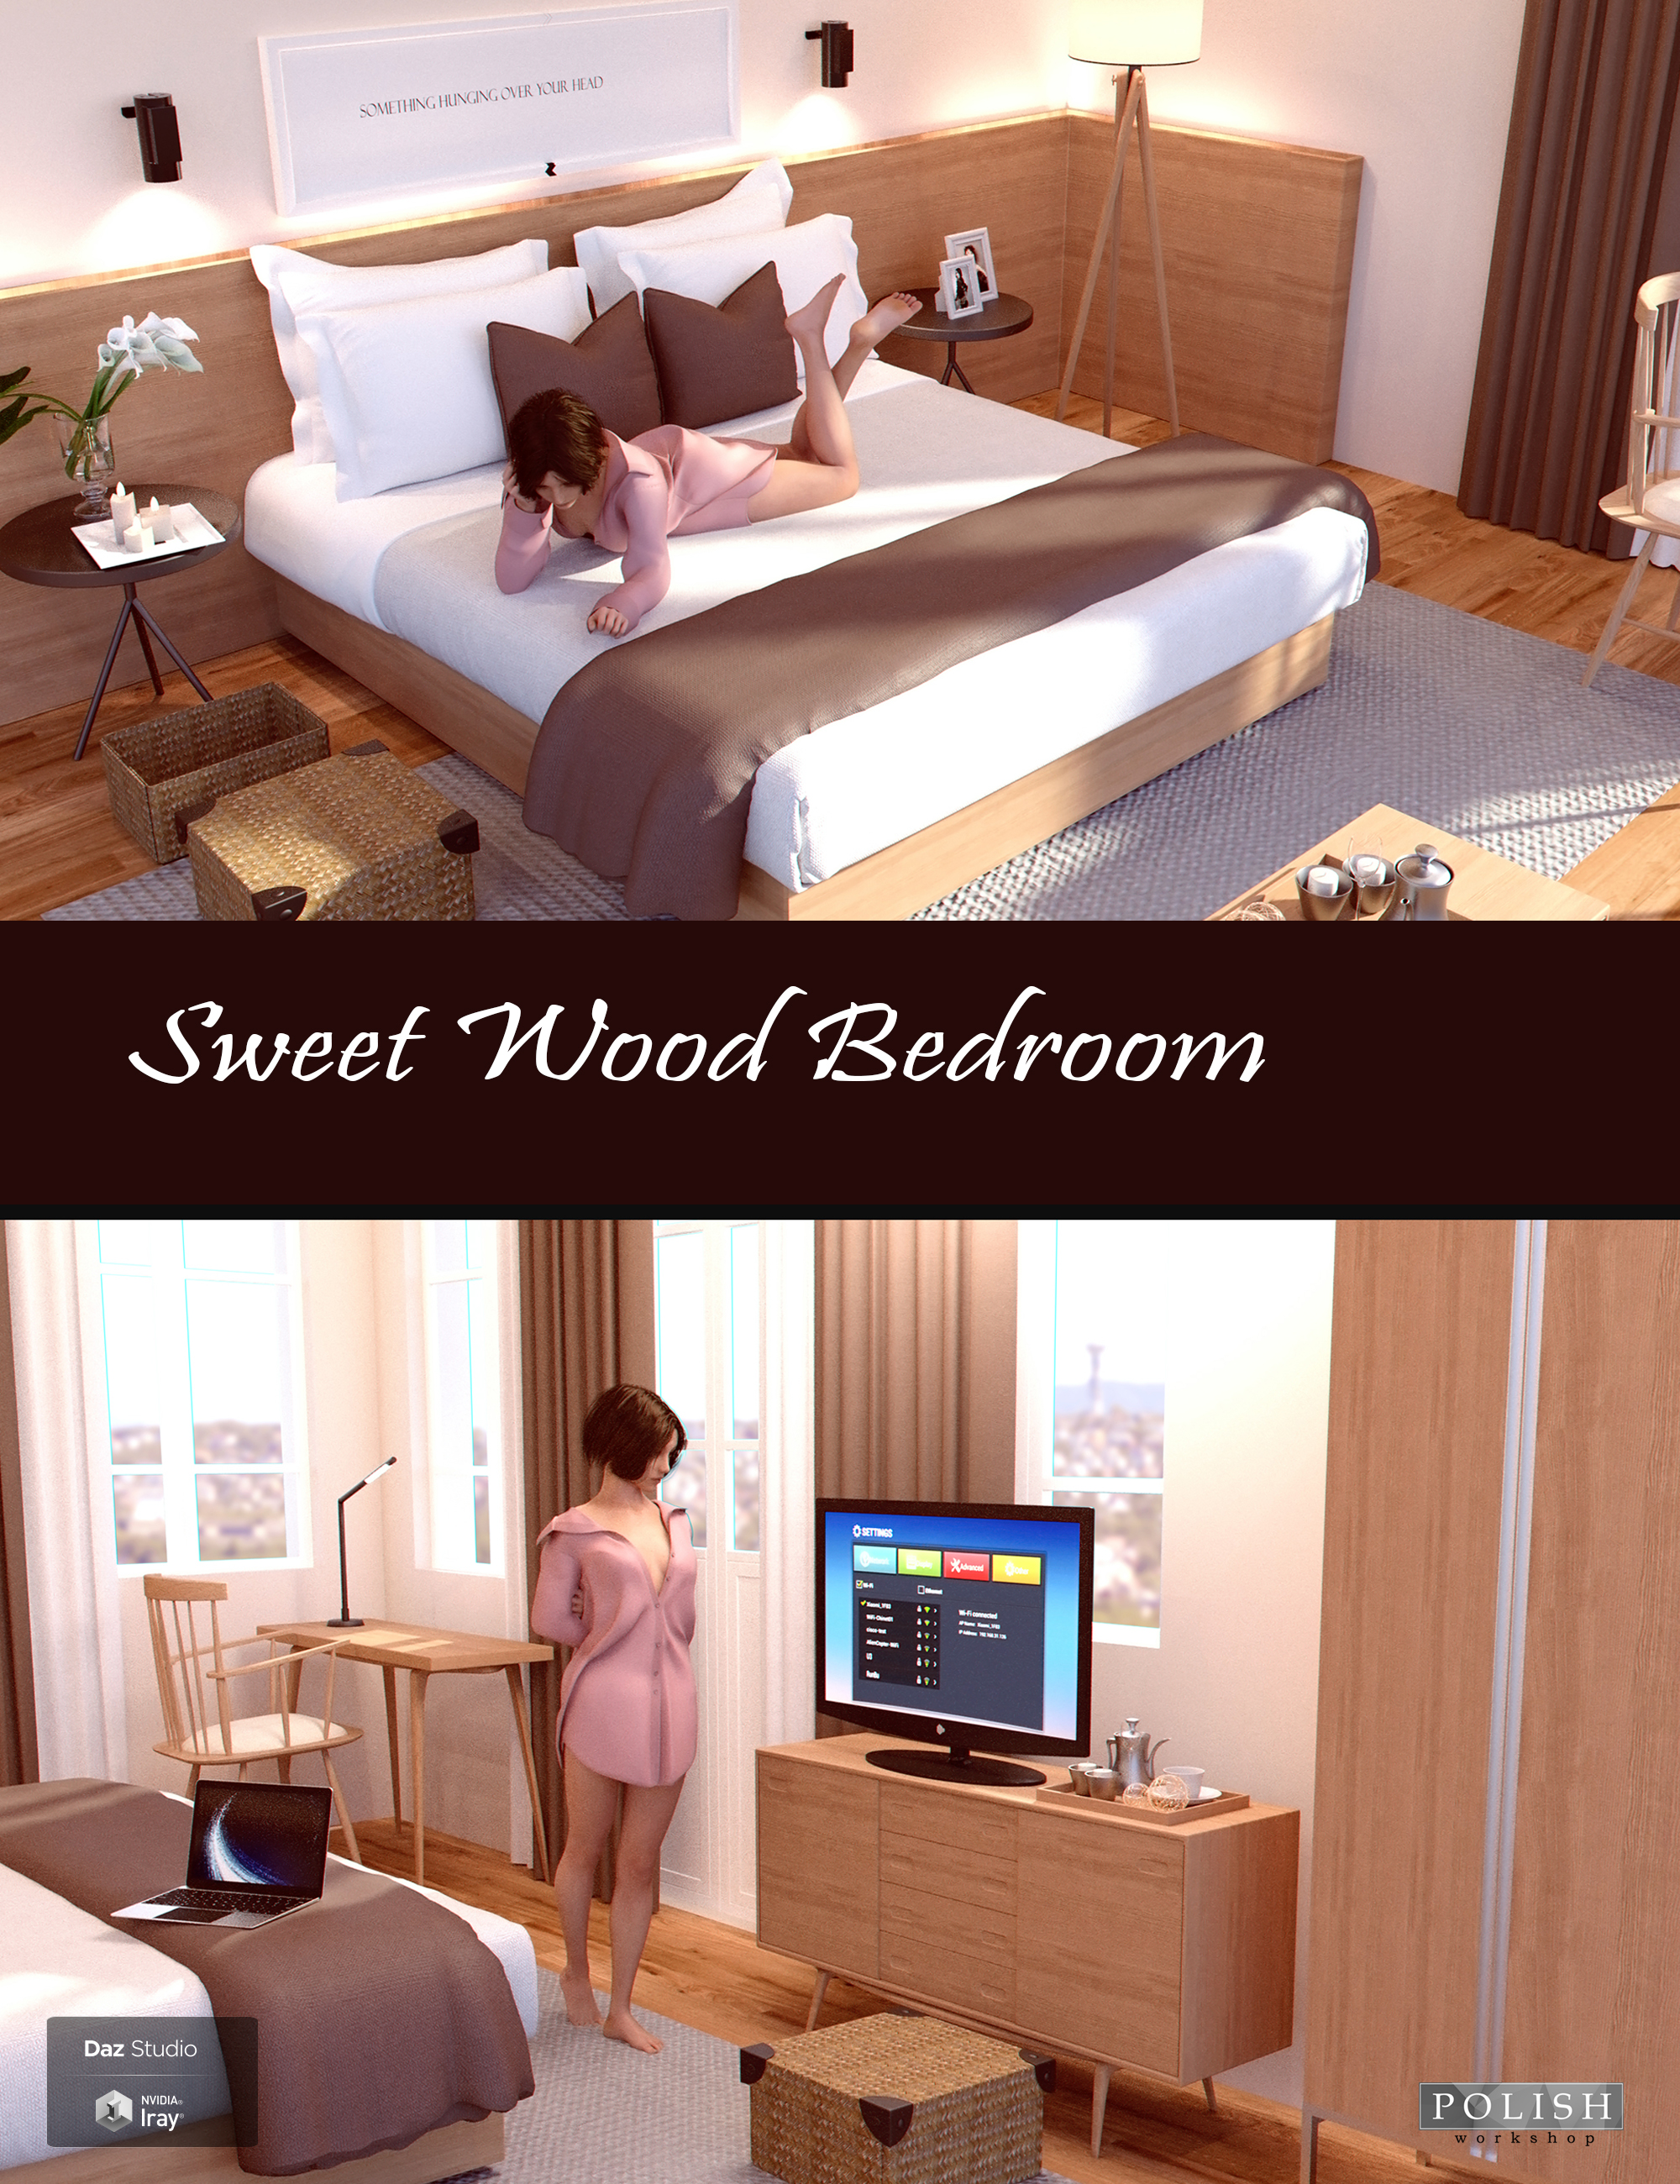 Sweet Wood Bedroom by: Polish, 3D Models by Daz 3D